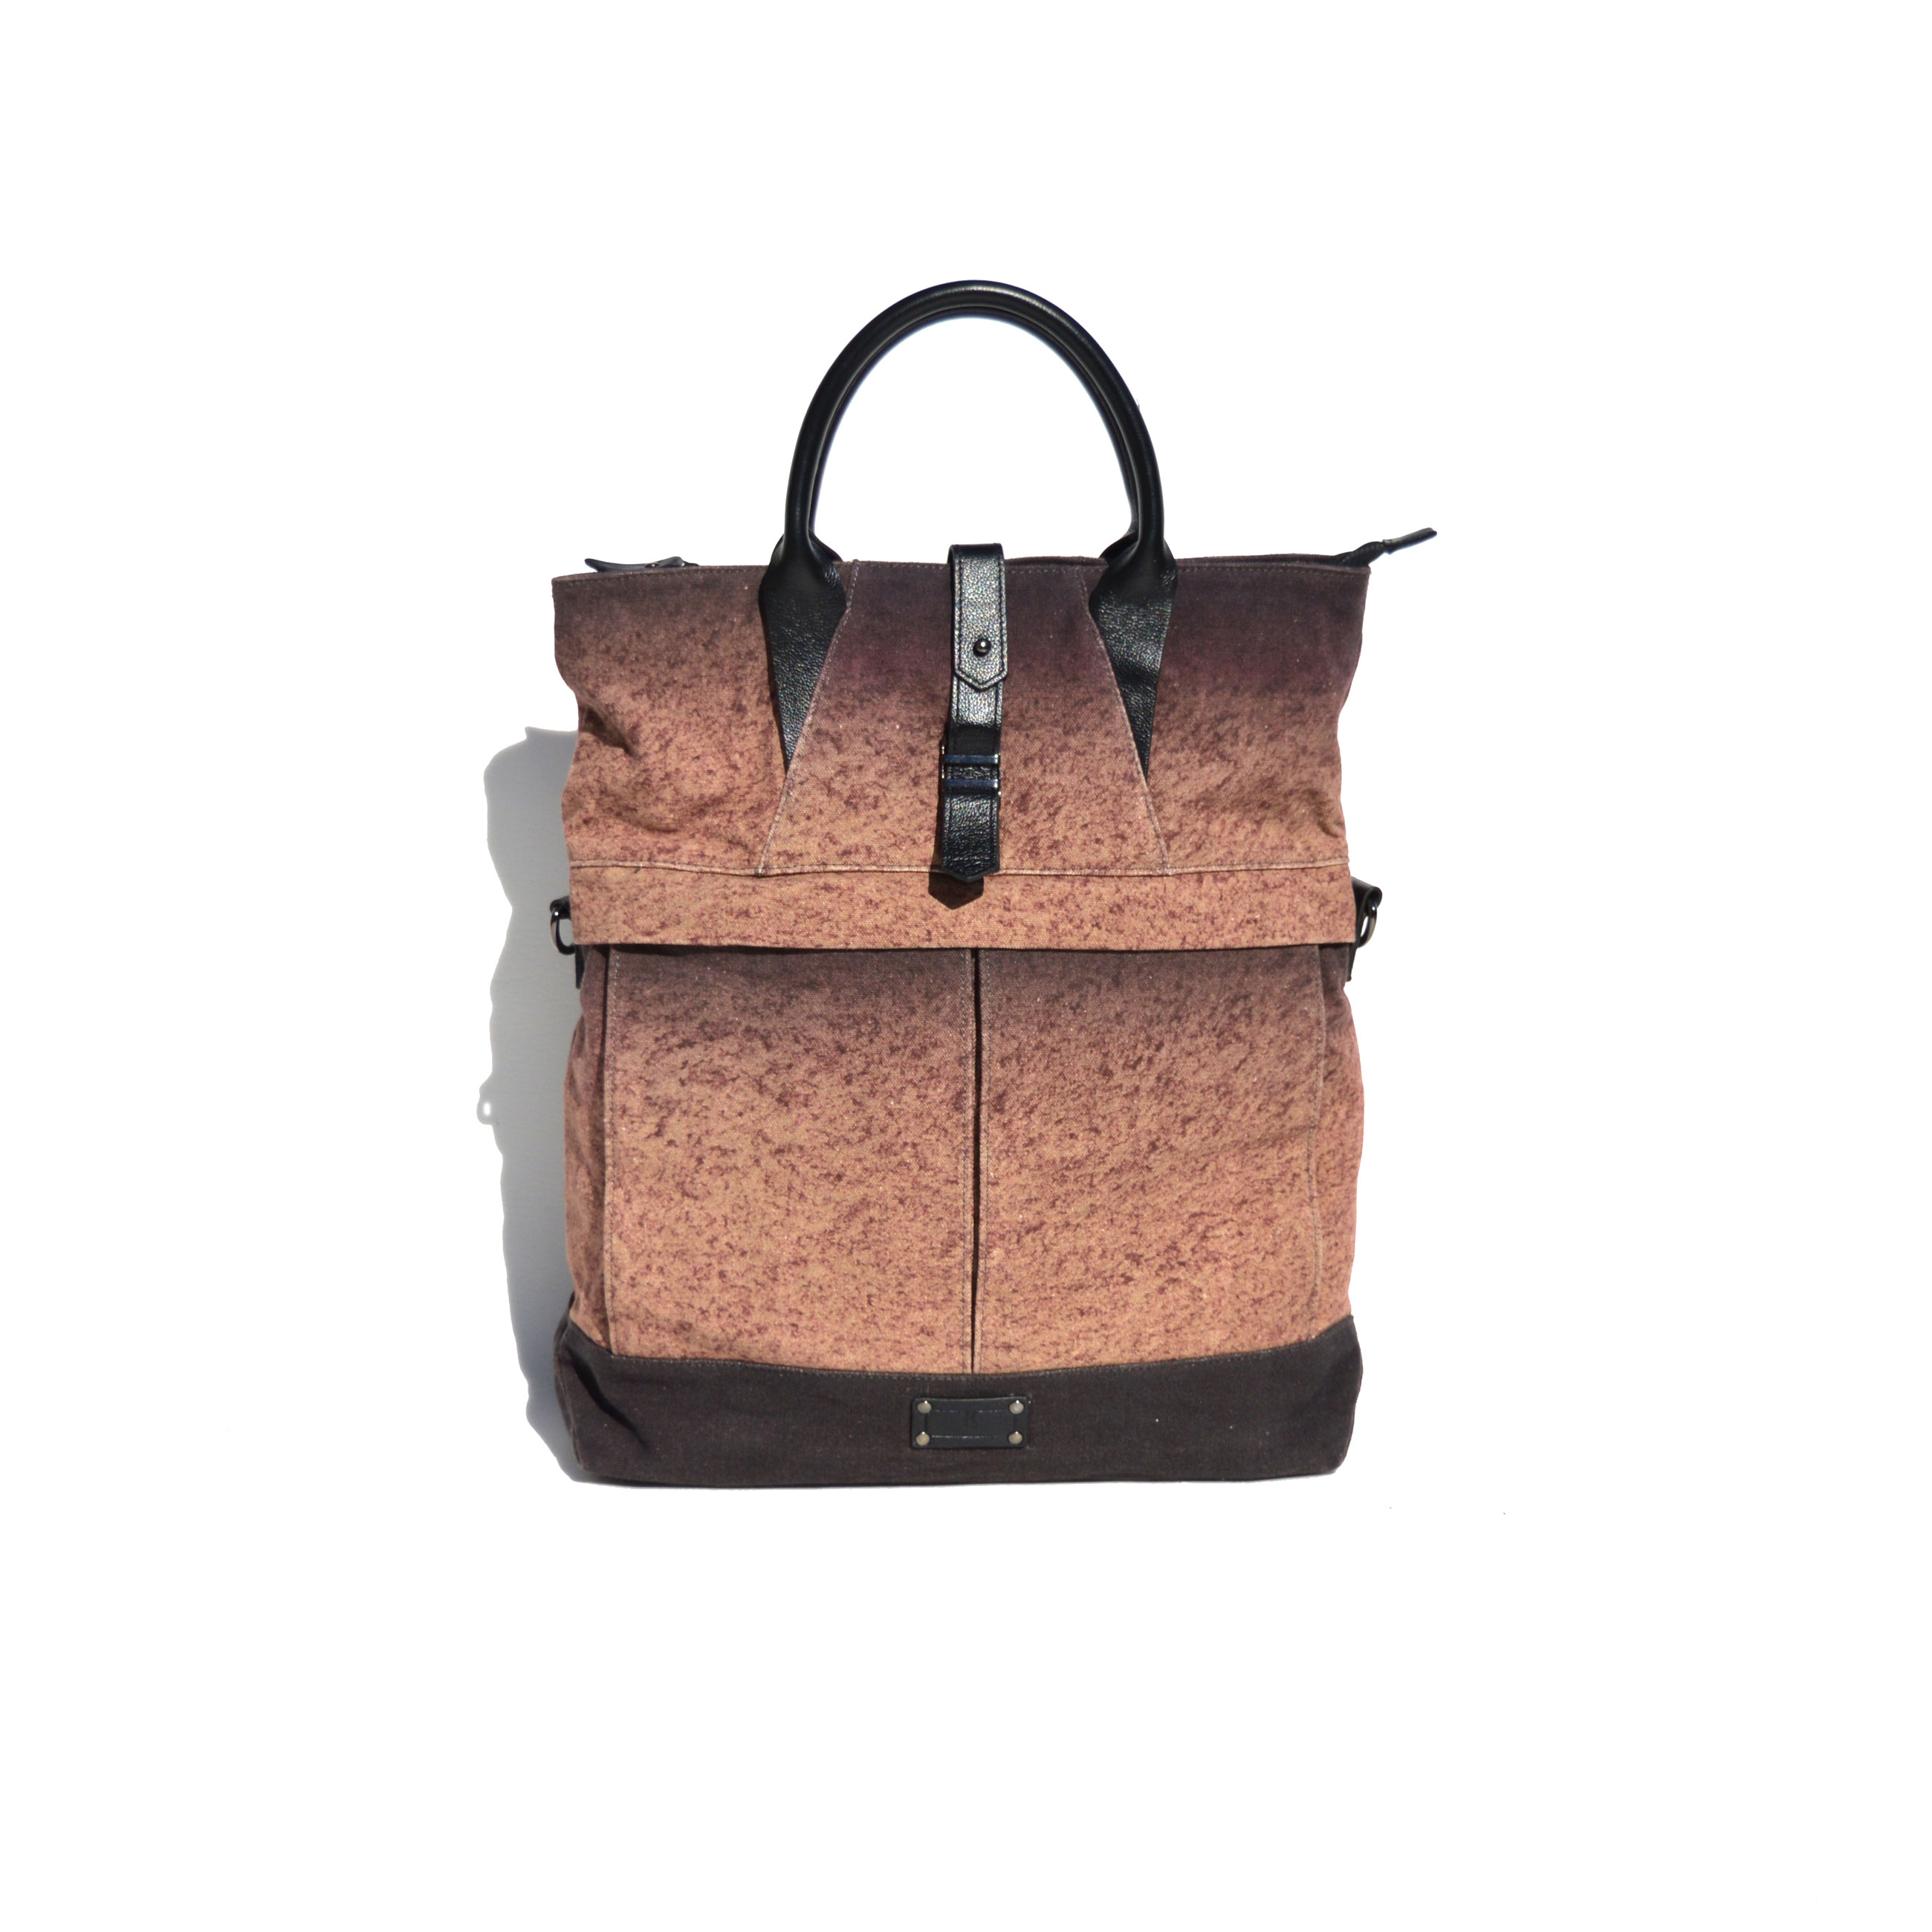 Ron Wan: Fashion collaboration with menswear label Krane Design on an Ombre bag collection